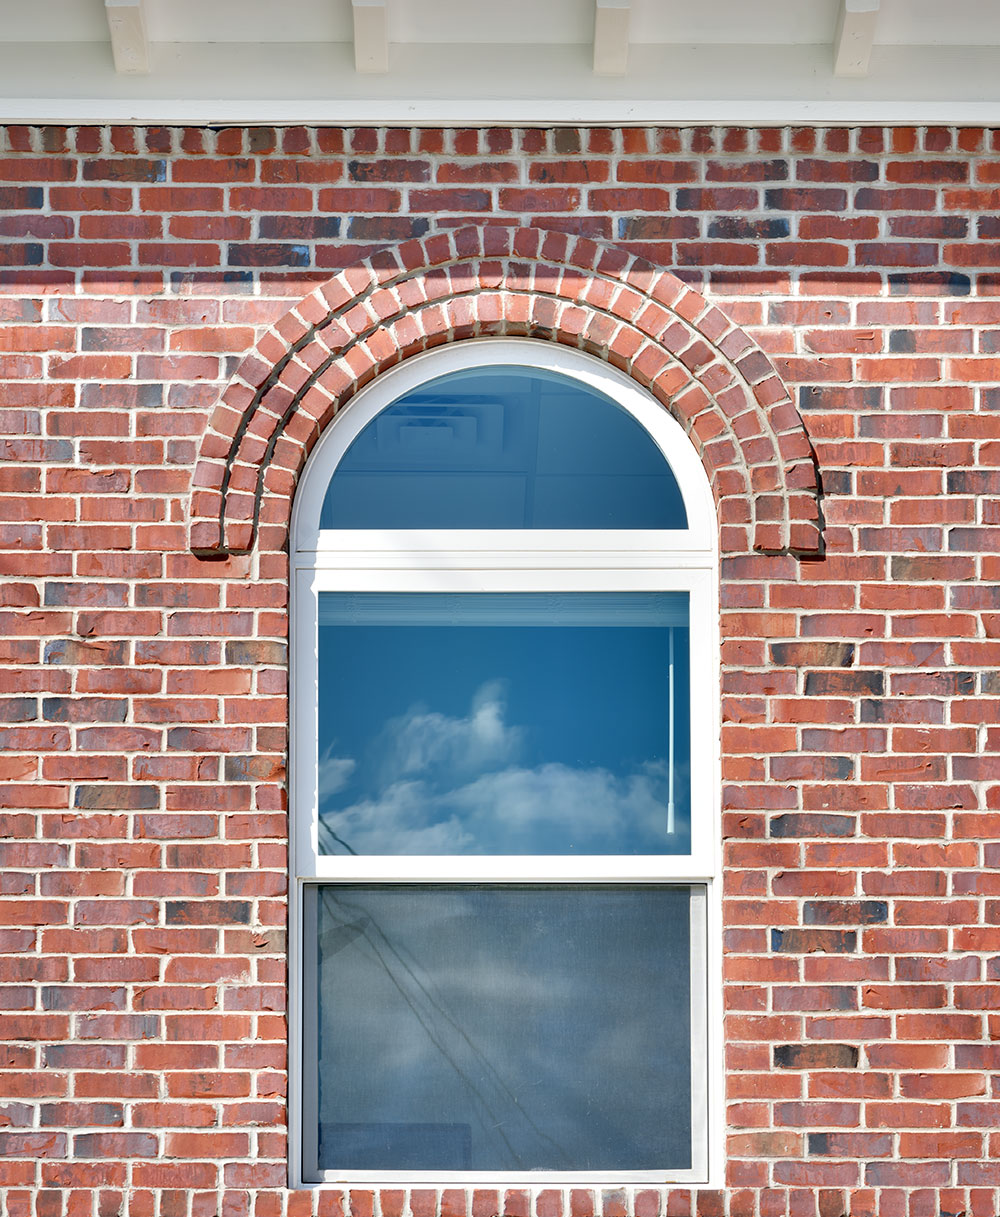 historic-window-architecture-utah-alpine-main-street